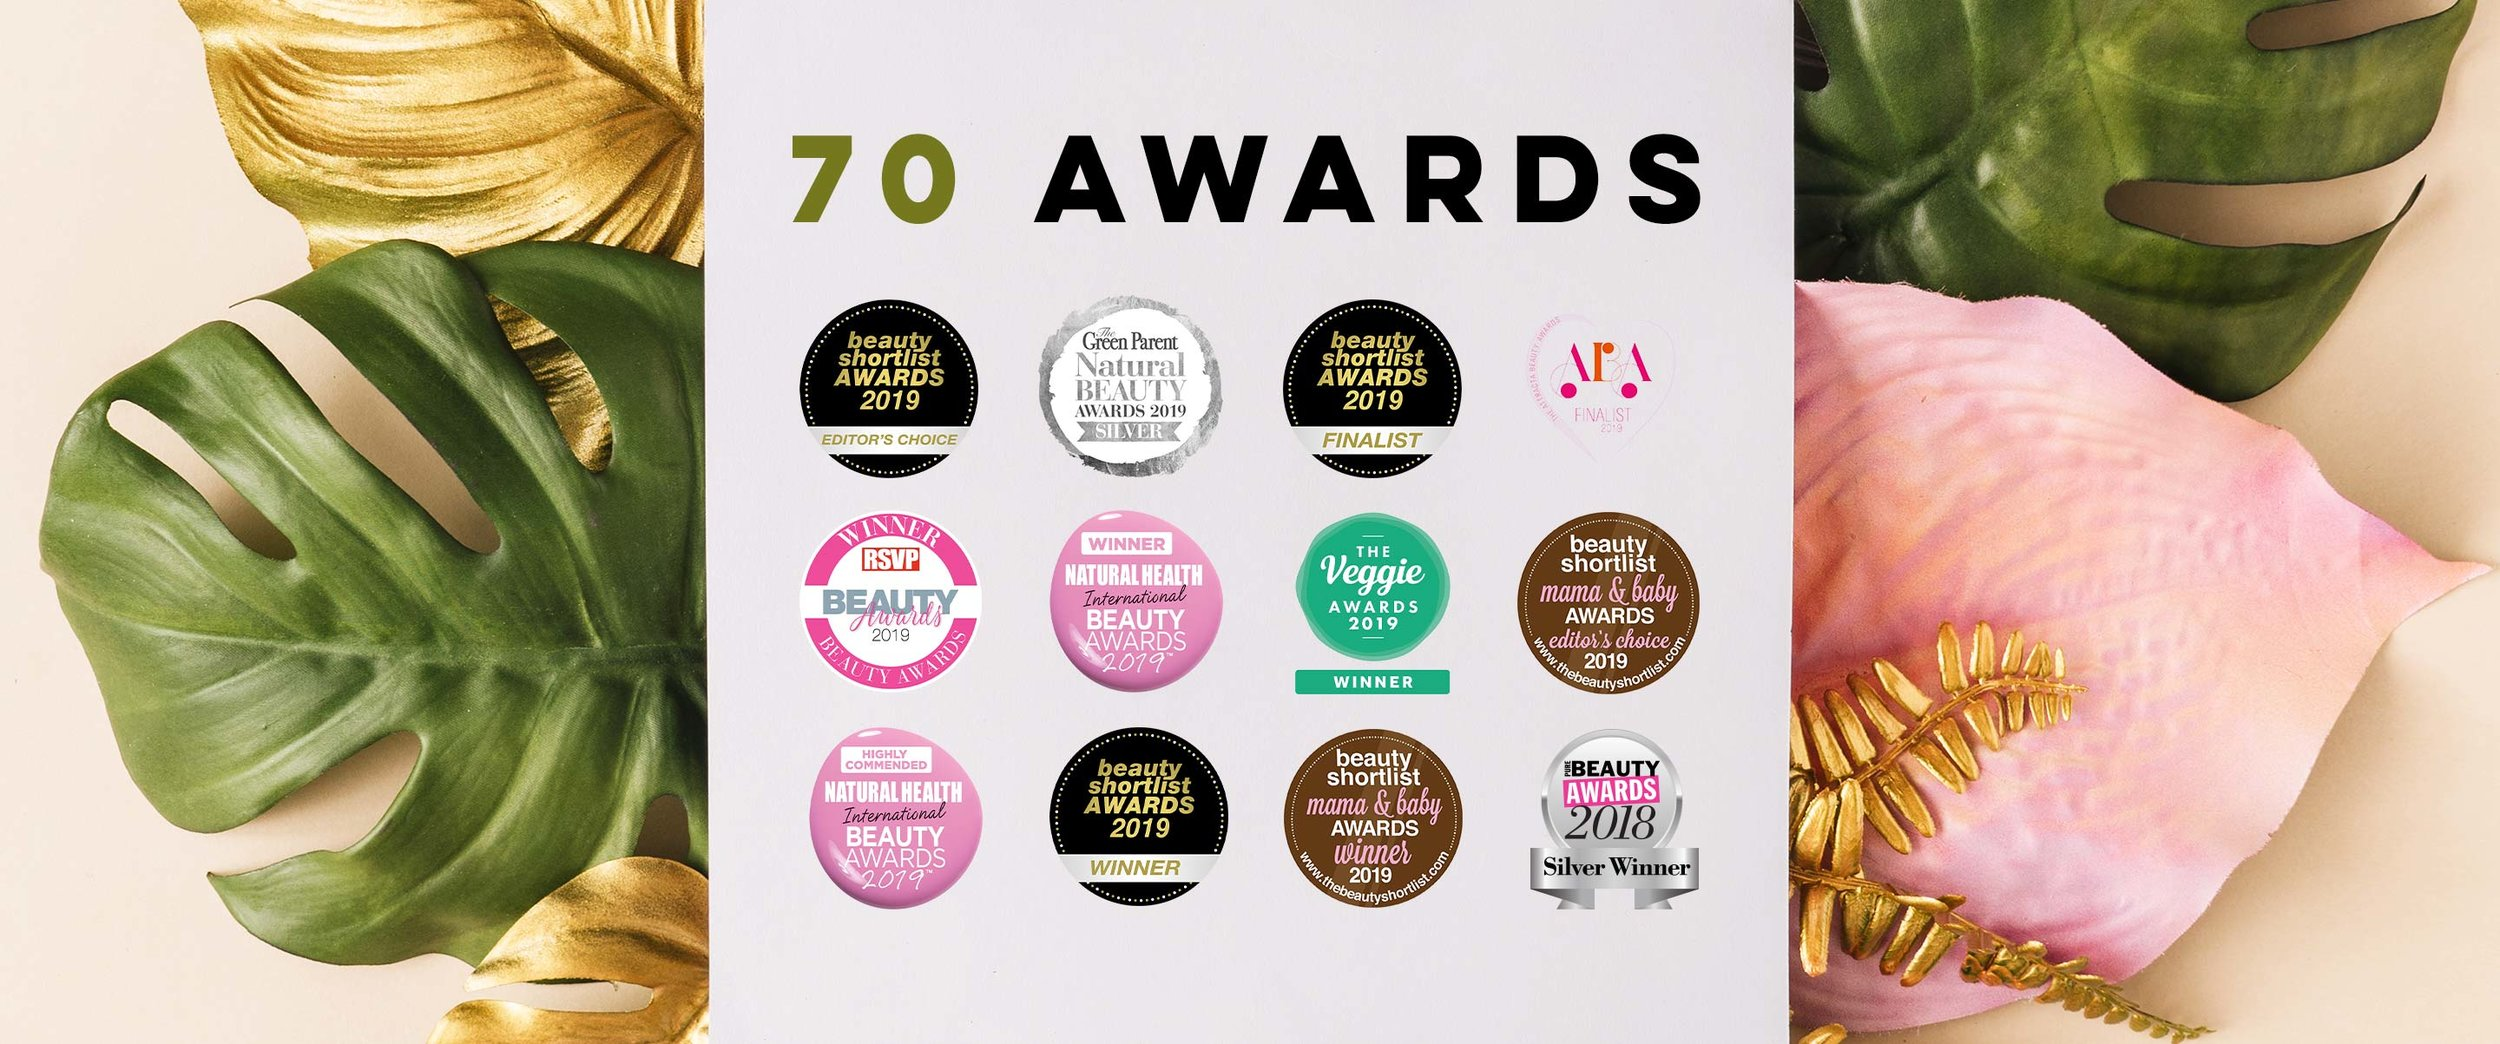 UV_Home_Banner_56_70Awards2.jpg